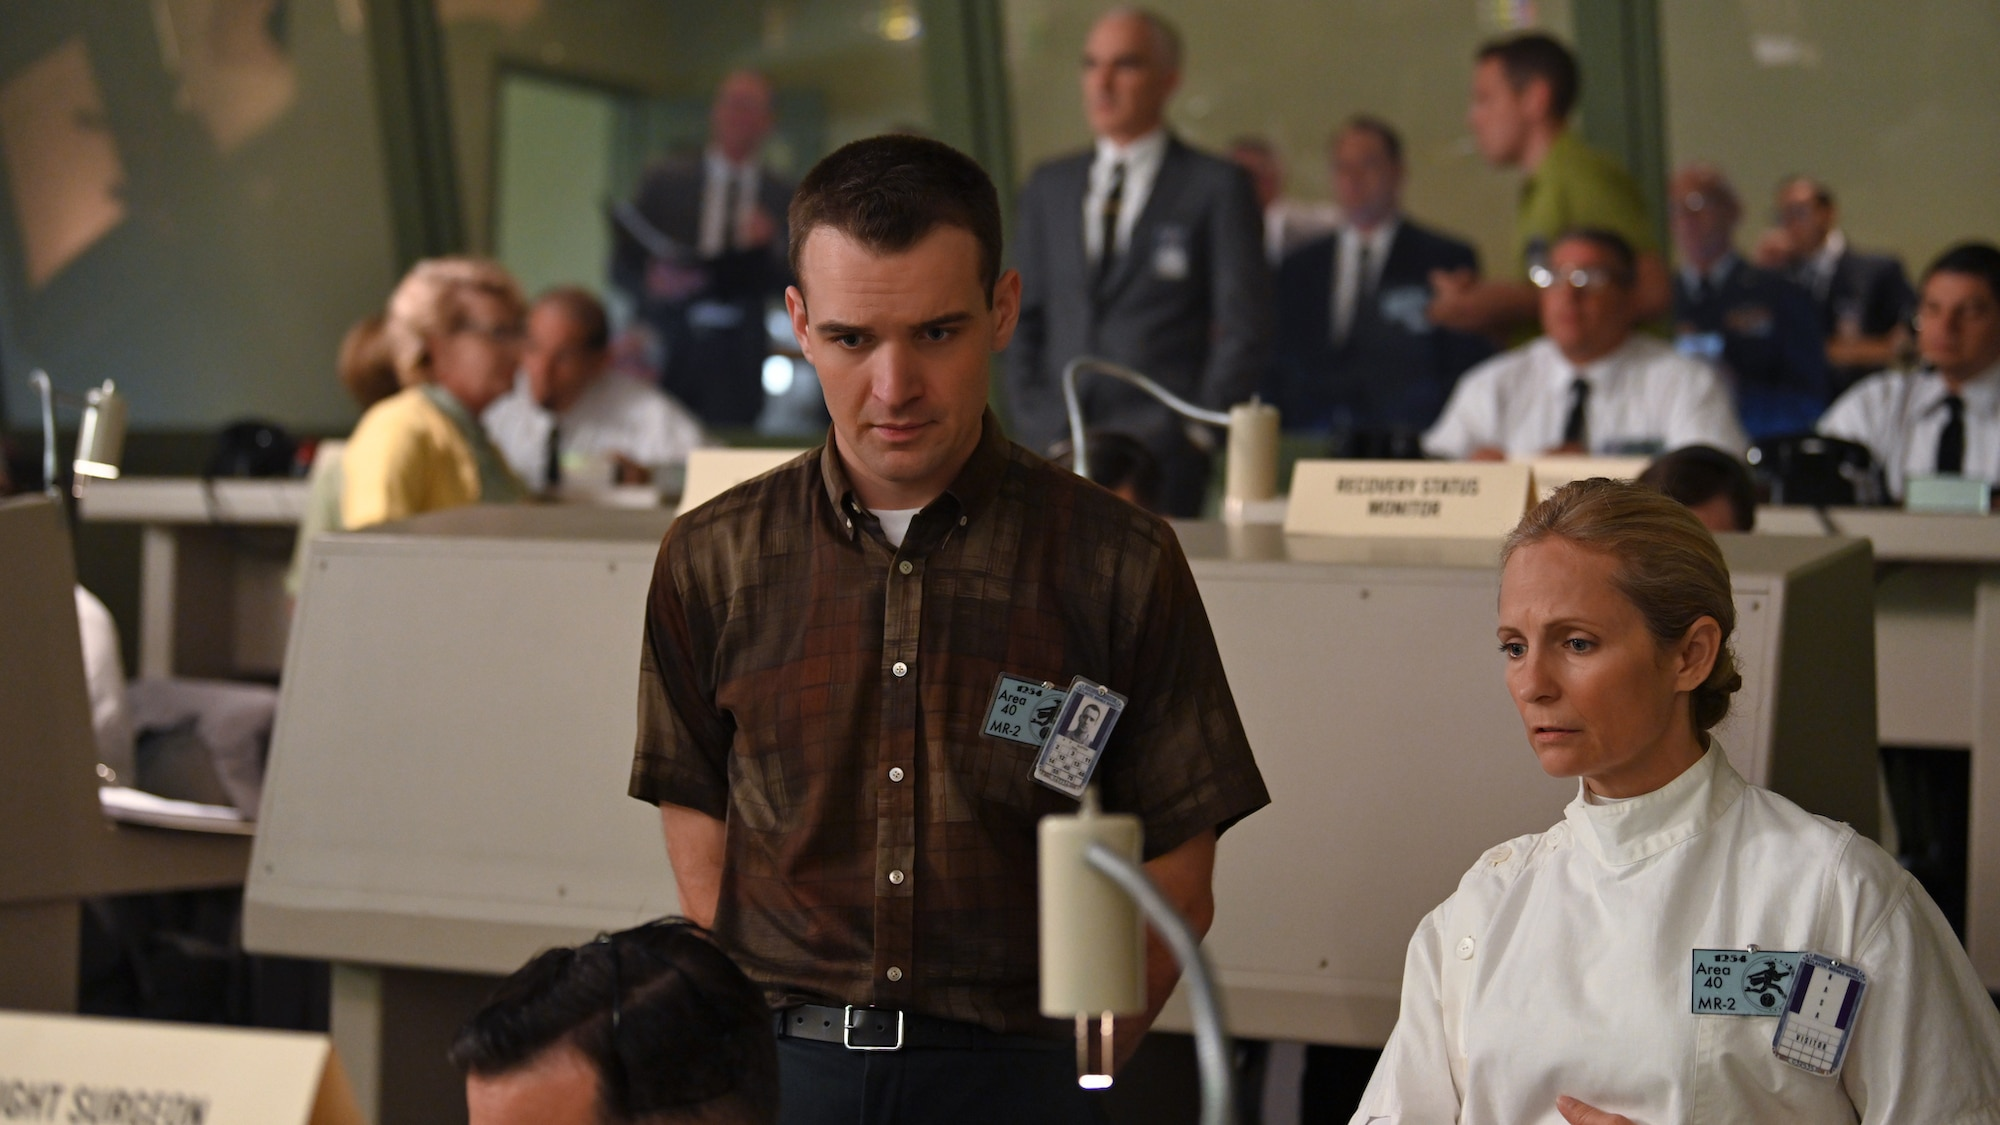 Micah Stock as Deke Slayton (front center) in Mercury Control Center during crucial rocket launch carrying a chimpanzee in National Geographic's THE RIGHT STUFF streaming on Disney+. (National Geographic/Gene Page)